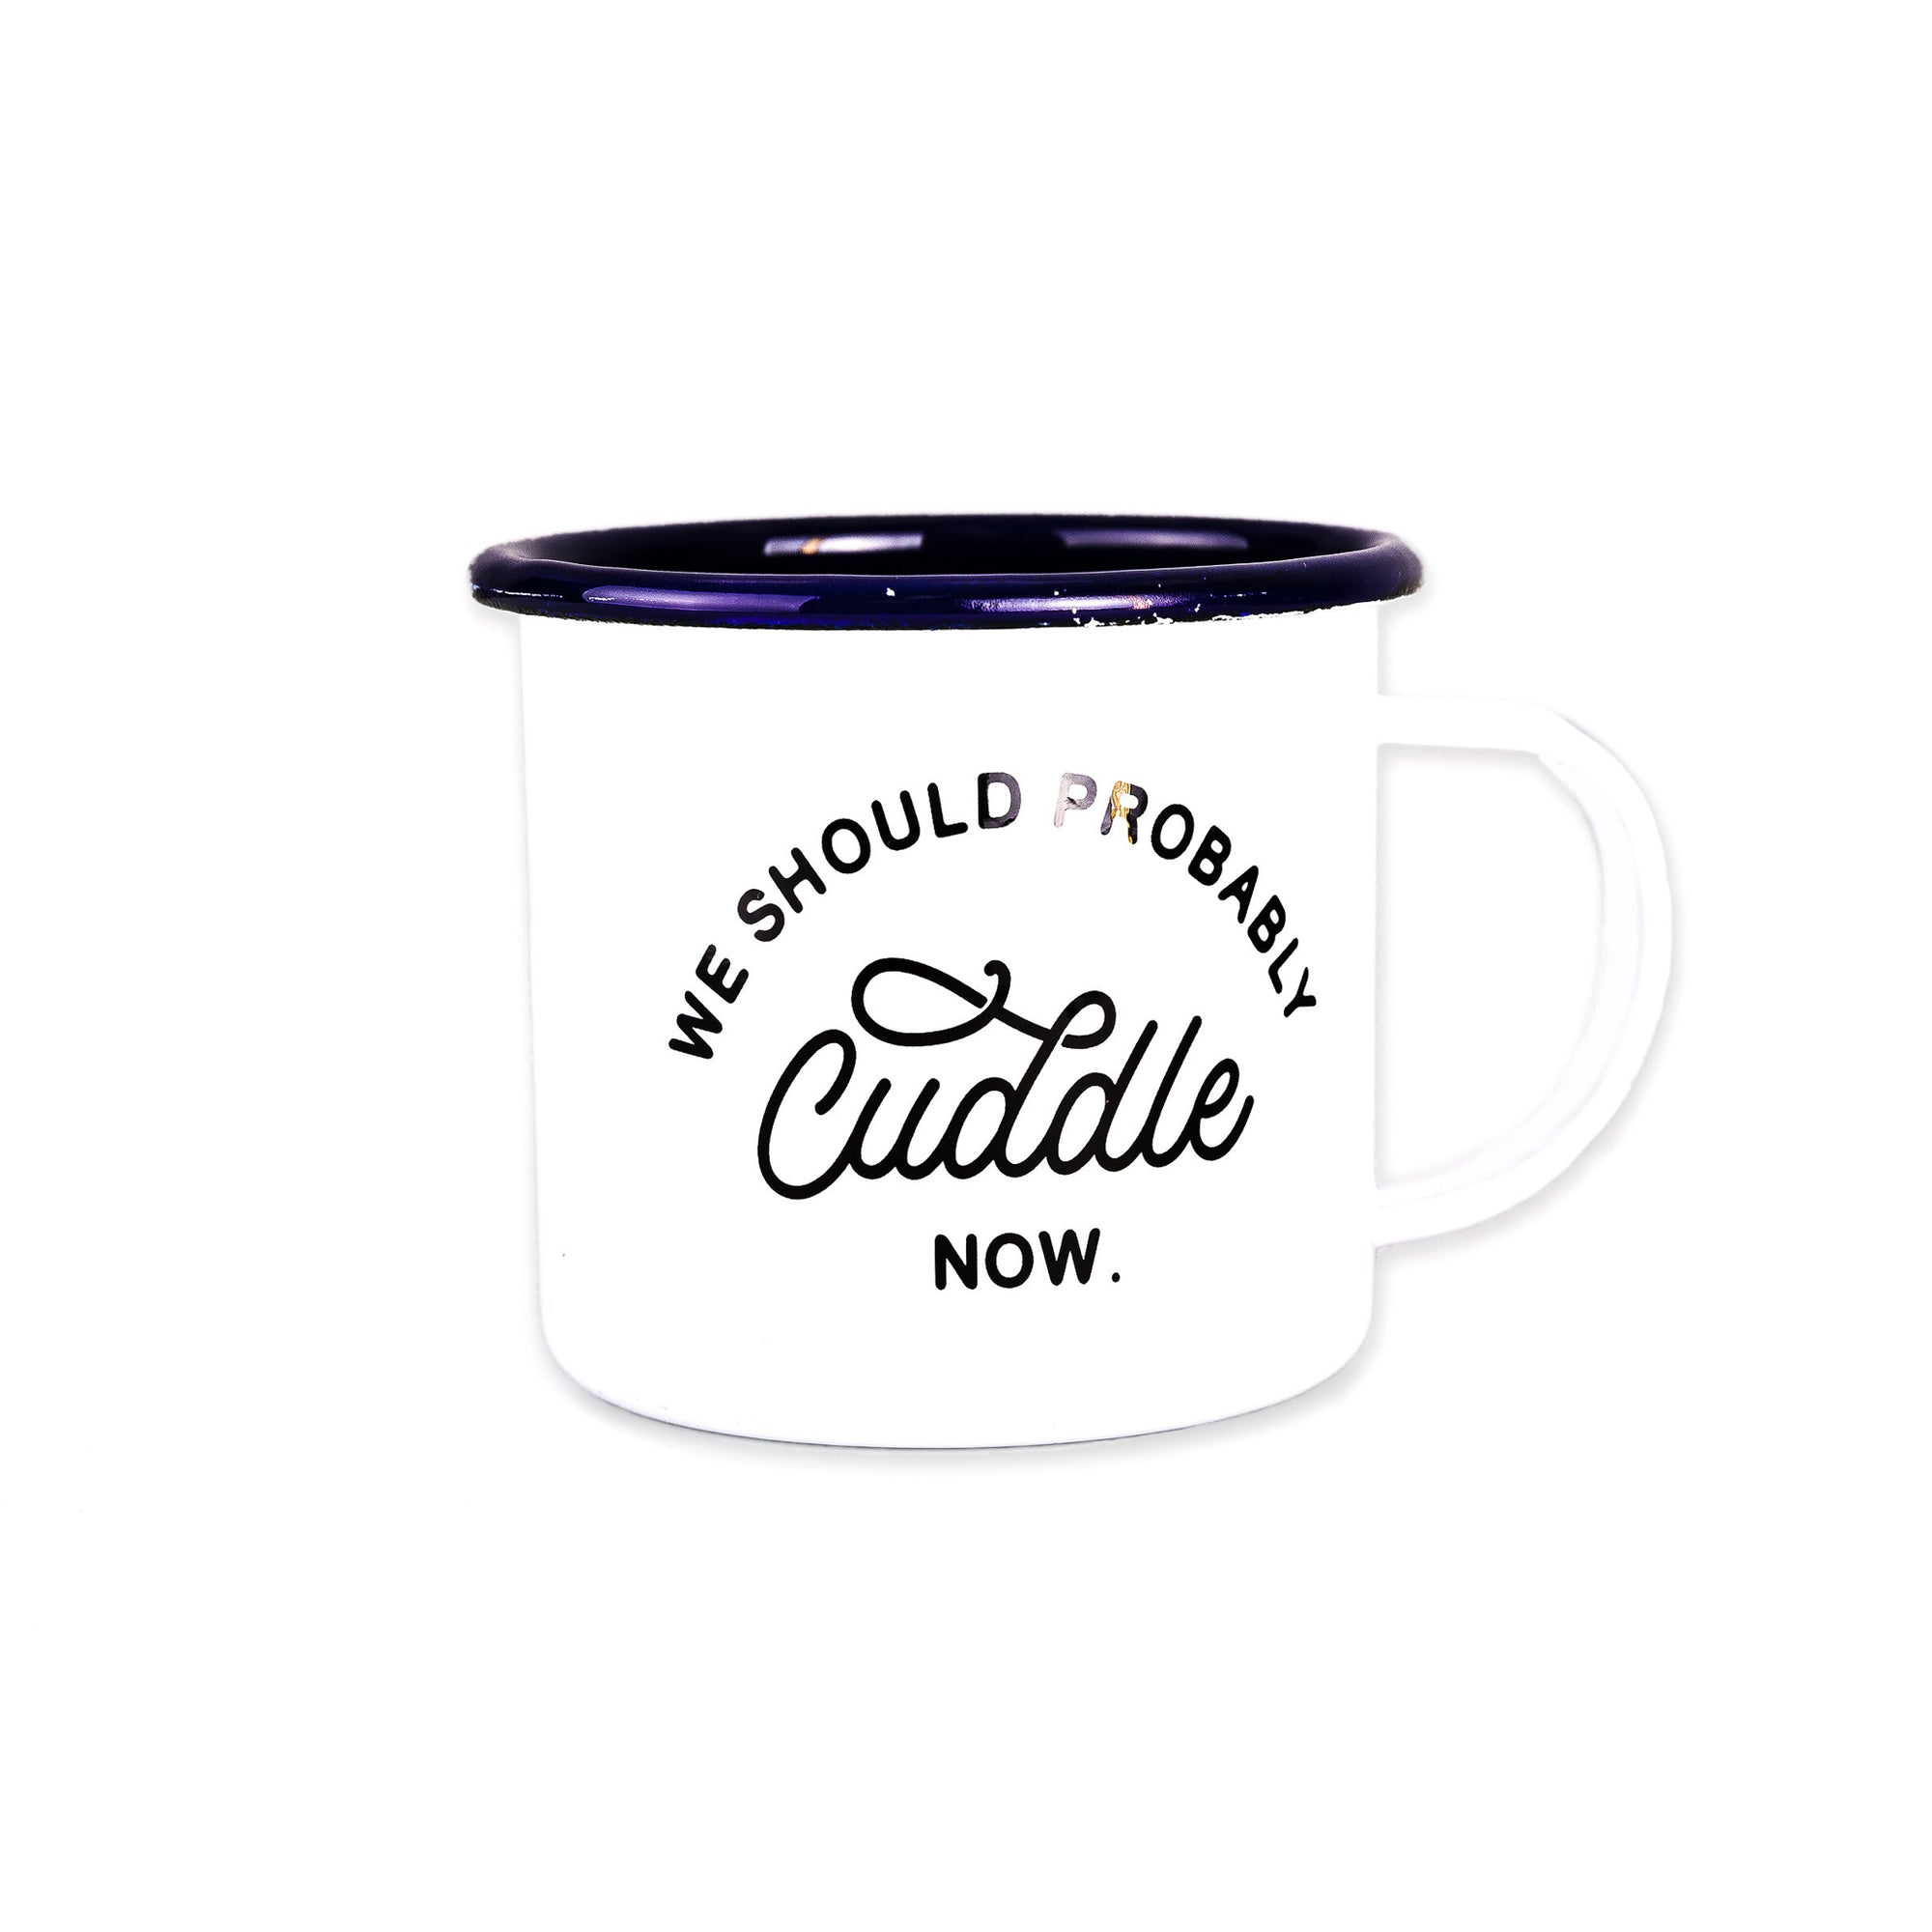 Let's Cuddle Enamel Mug, 16-Ounce